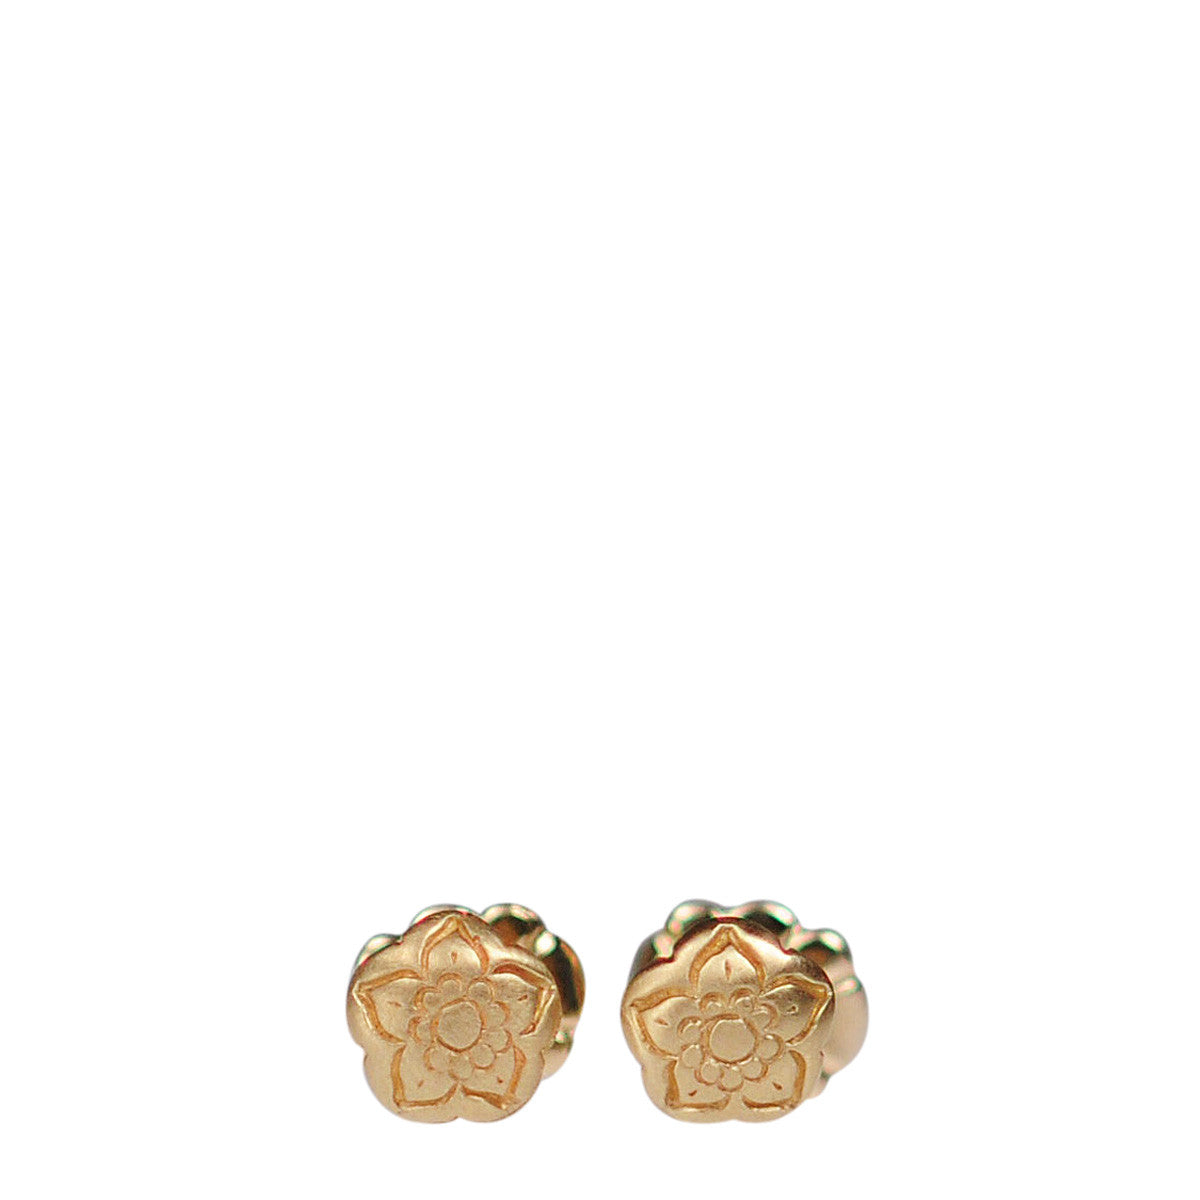 shld s earrings earn shop online disney shopping your gold getimage way url